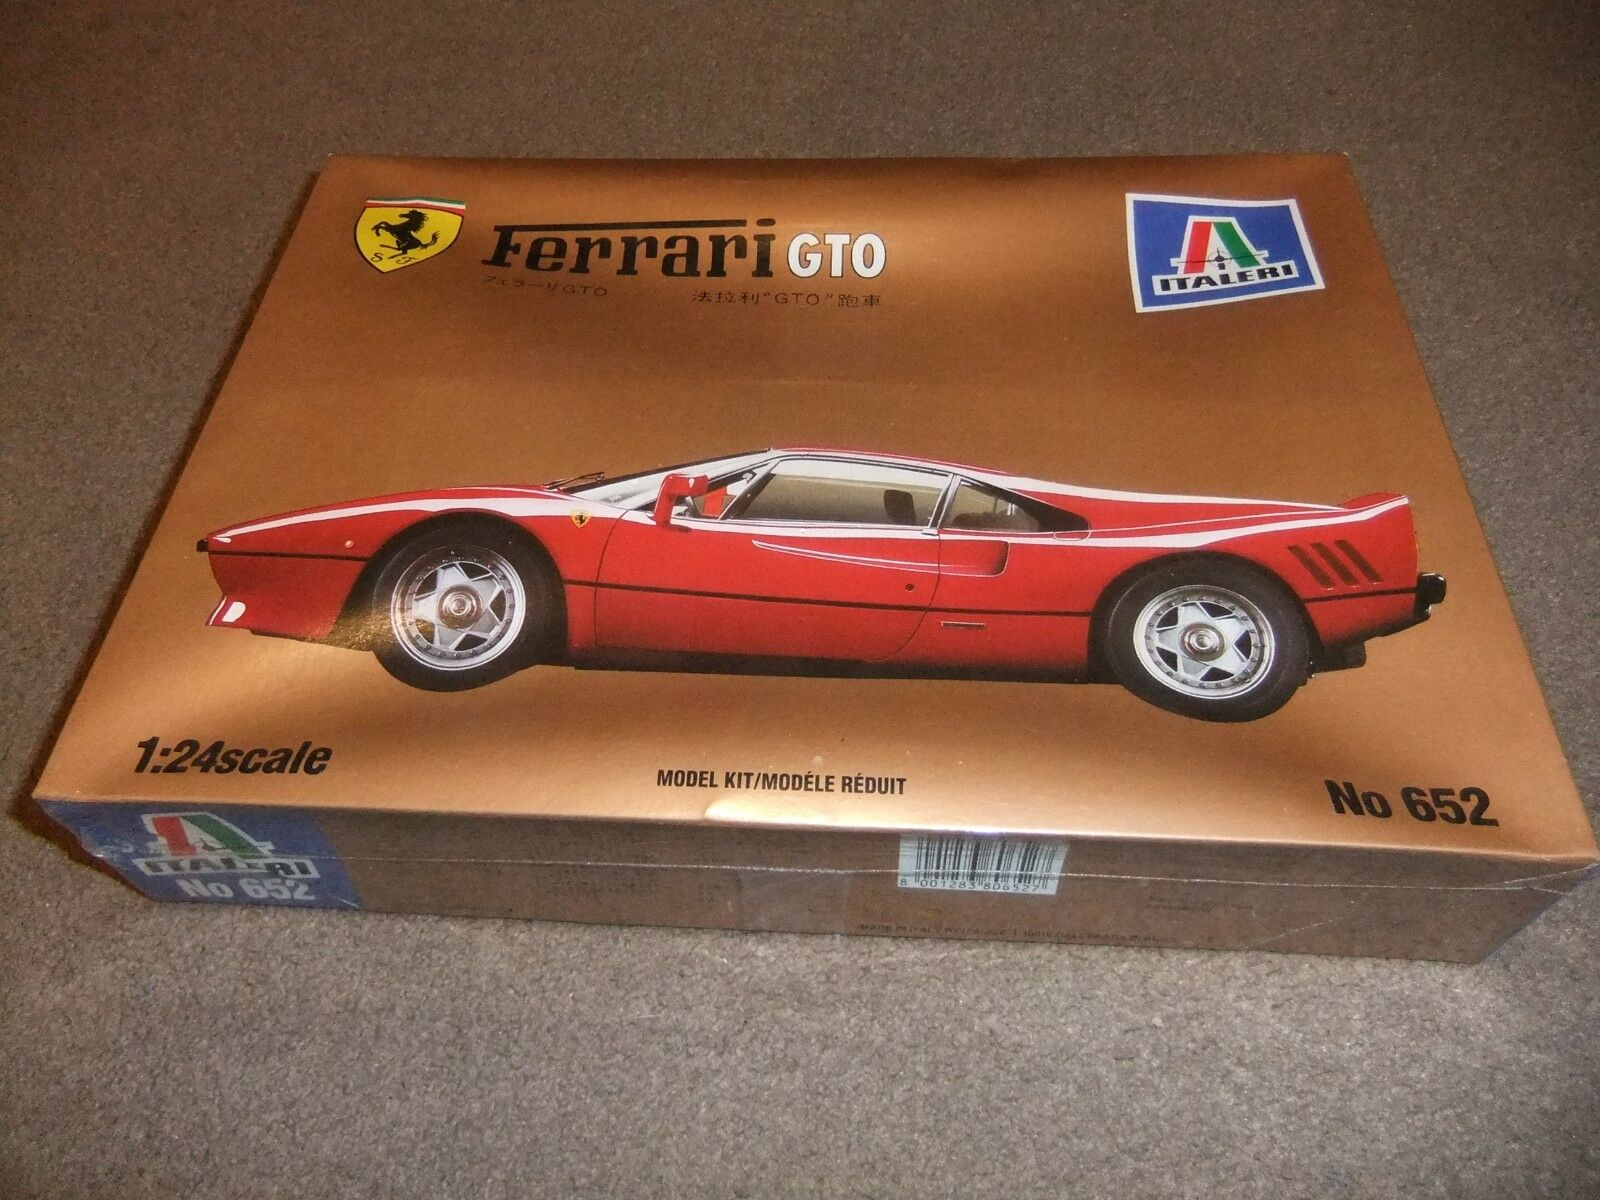 Italeri 652 - 1 24 Ferrari GTO - Factory Sealed